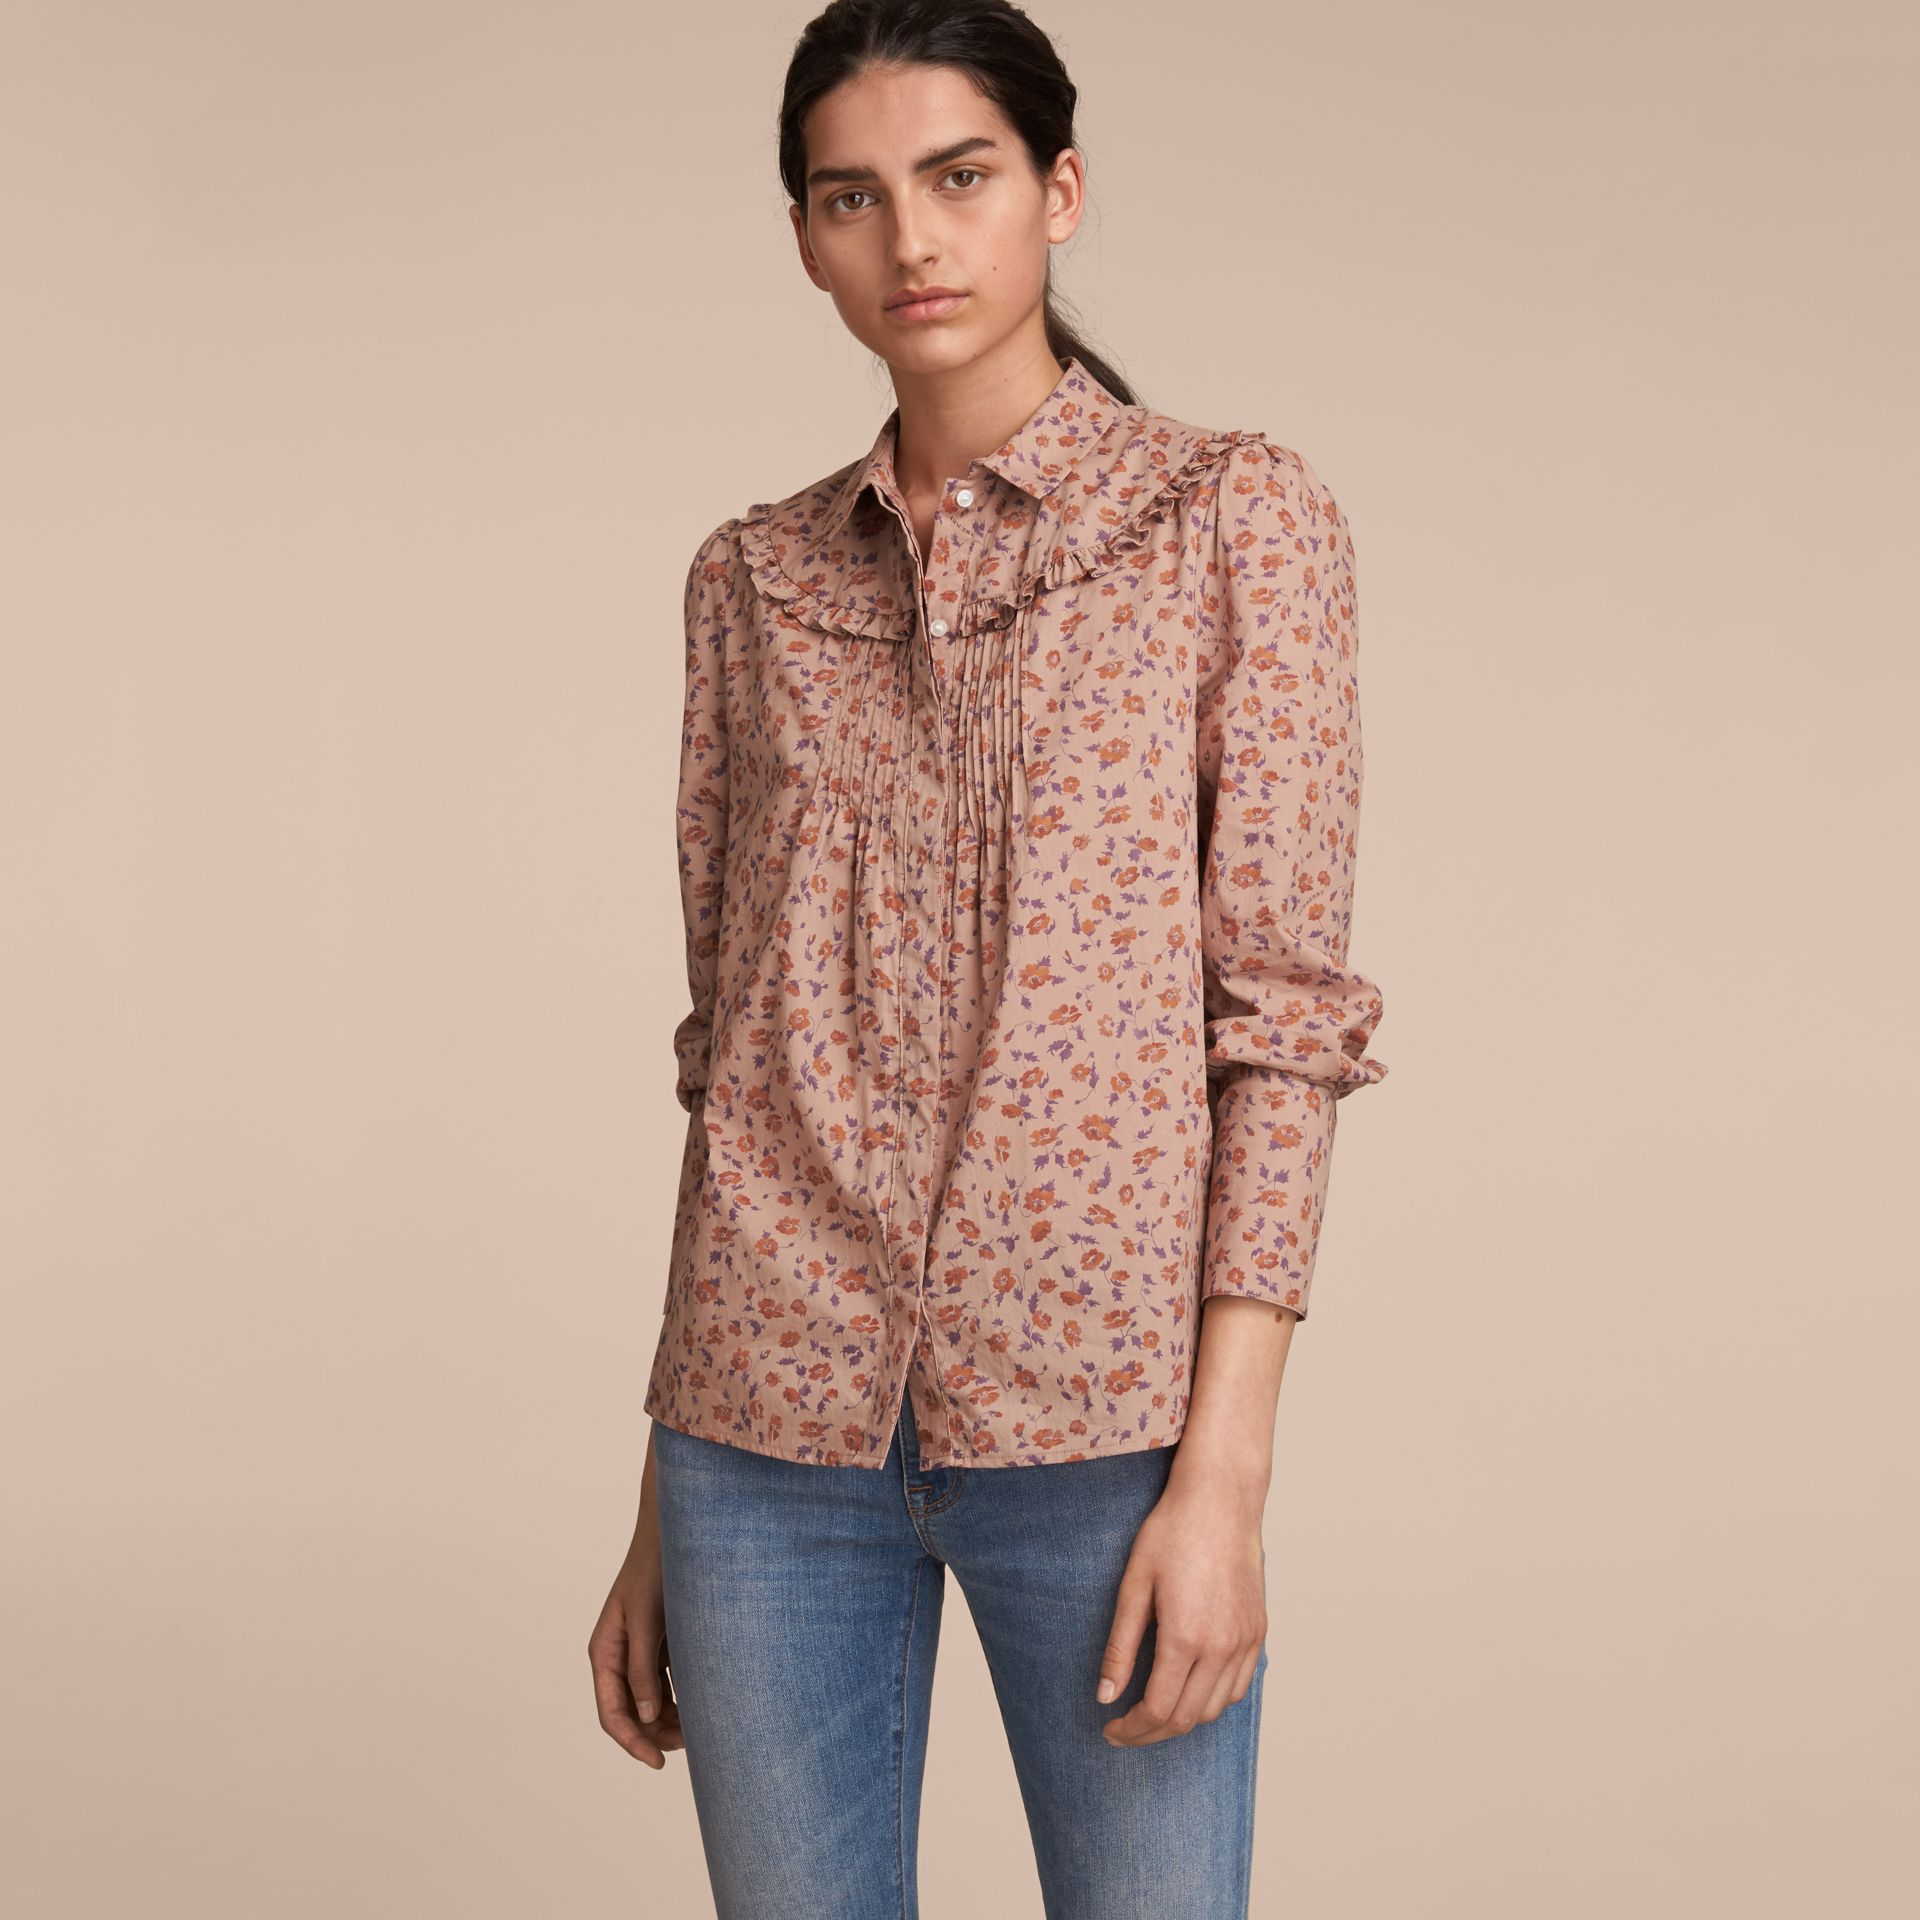 Ruffle Yoke Floral Print Cotton Shirt in Light Copper - Women | Burberry Singapore - gallery image 6